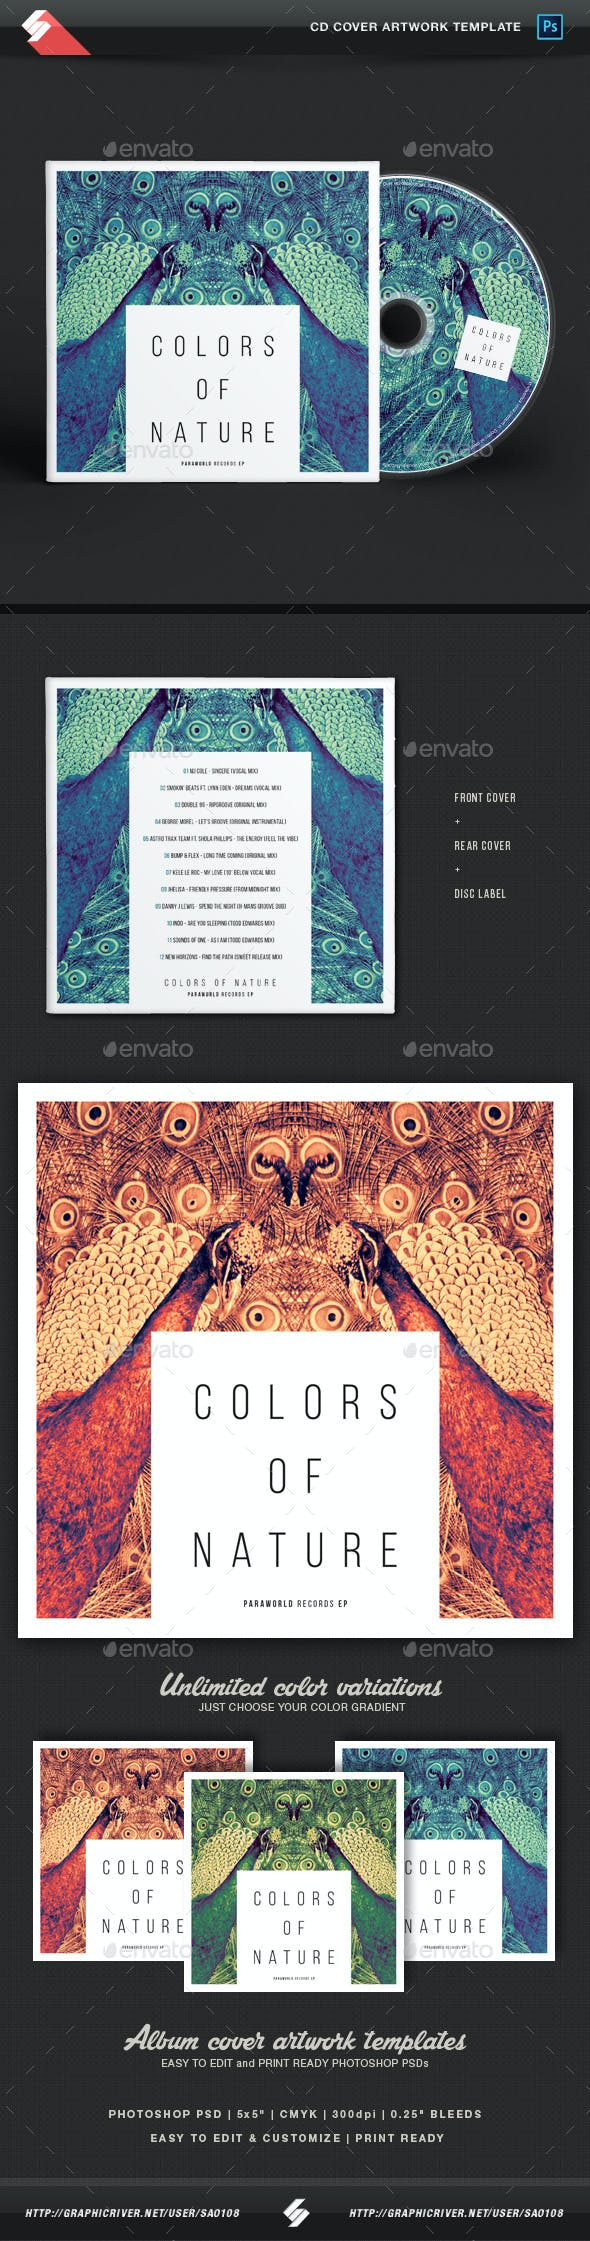 13 Best CD & DVD Artwork Templates  for May 2019